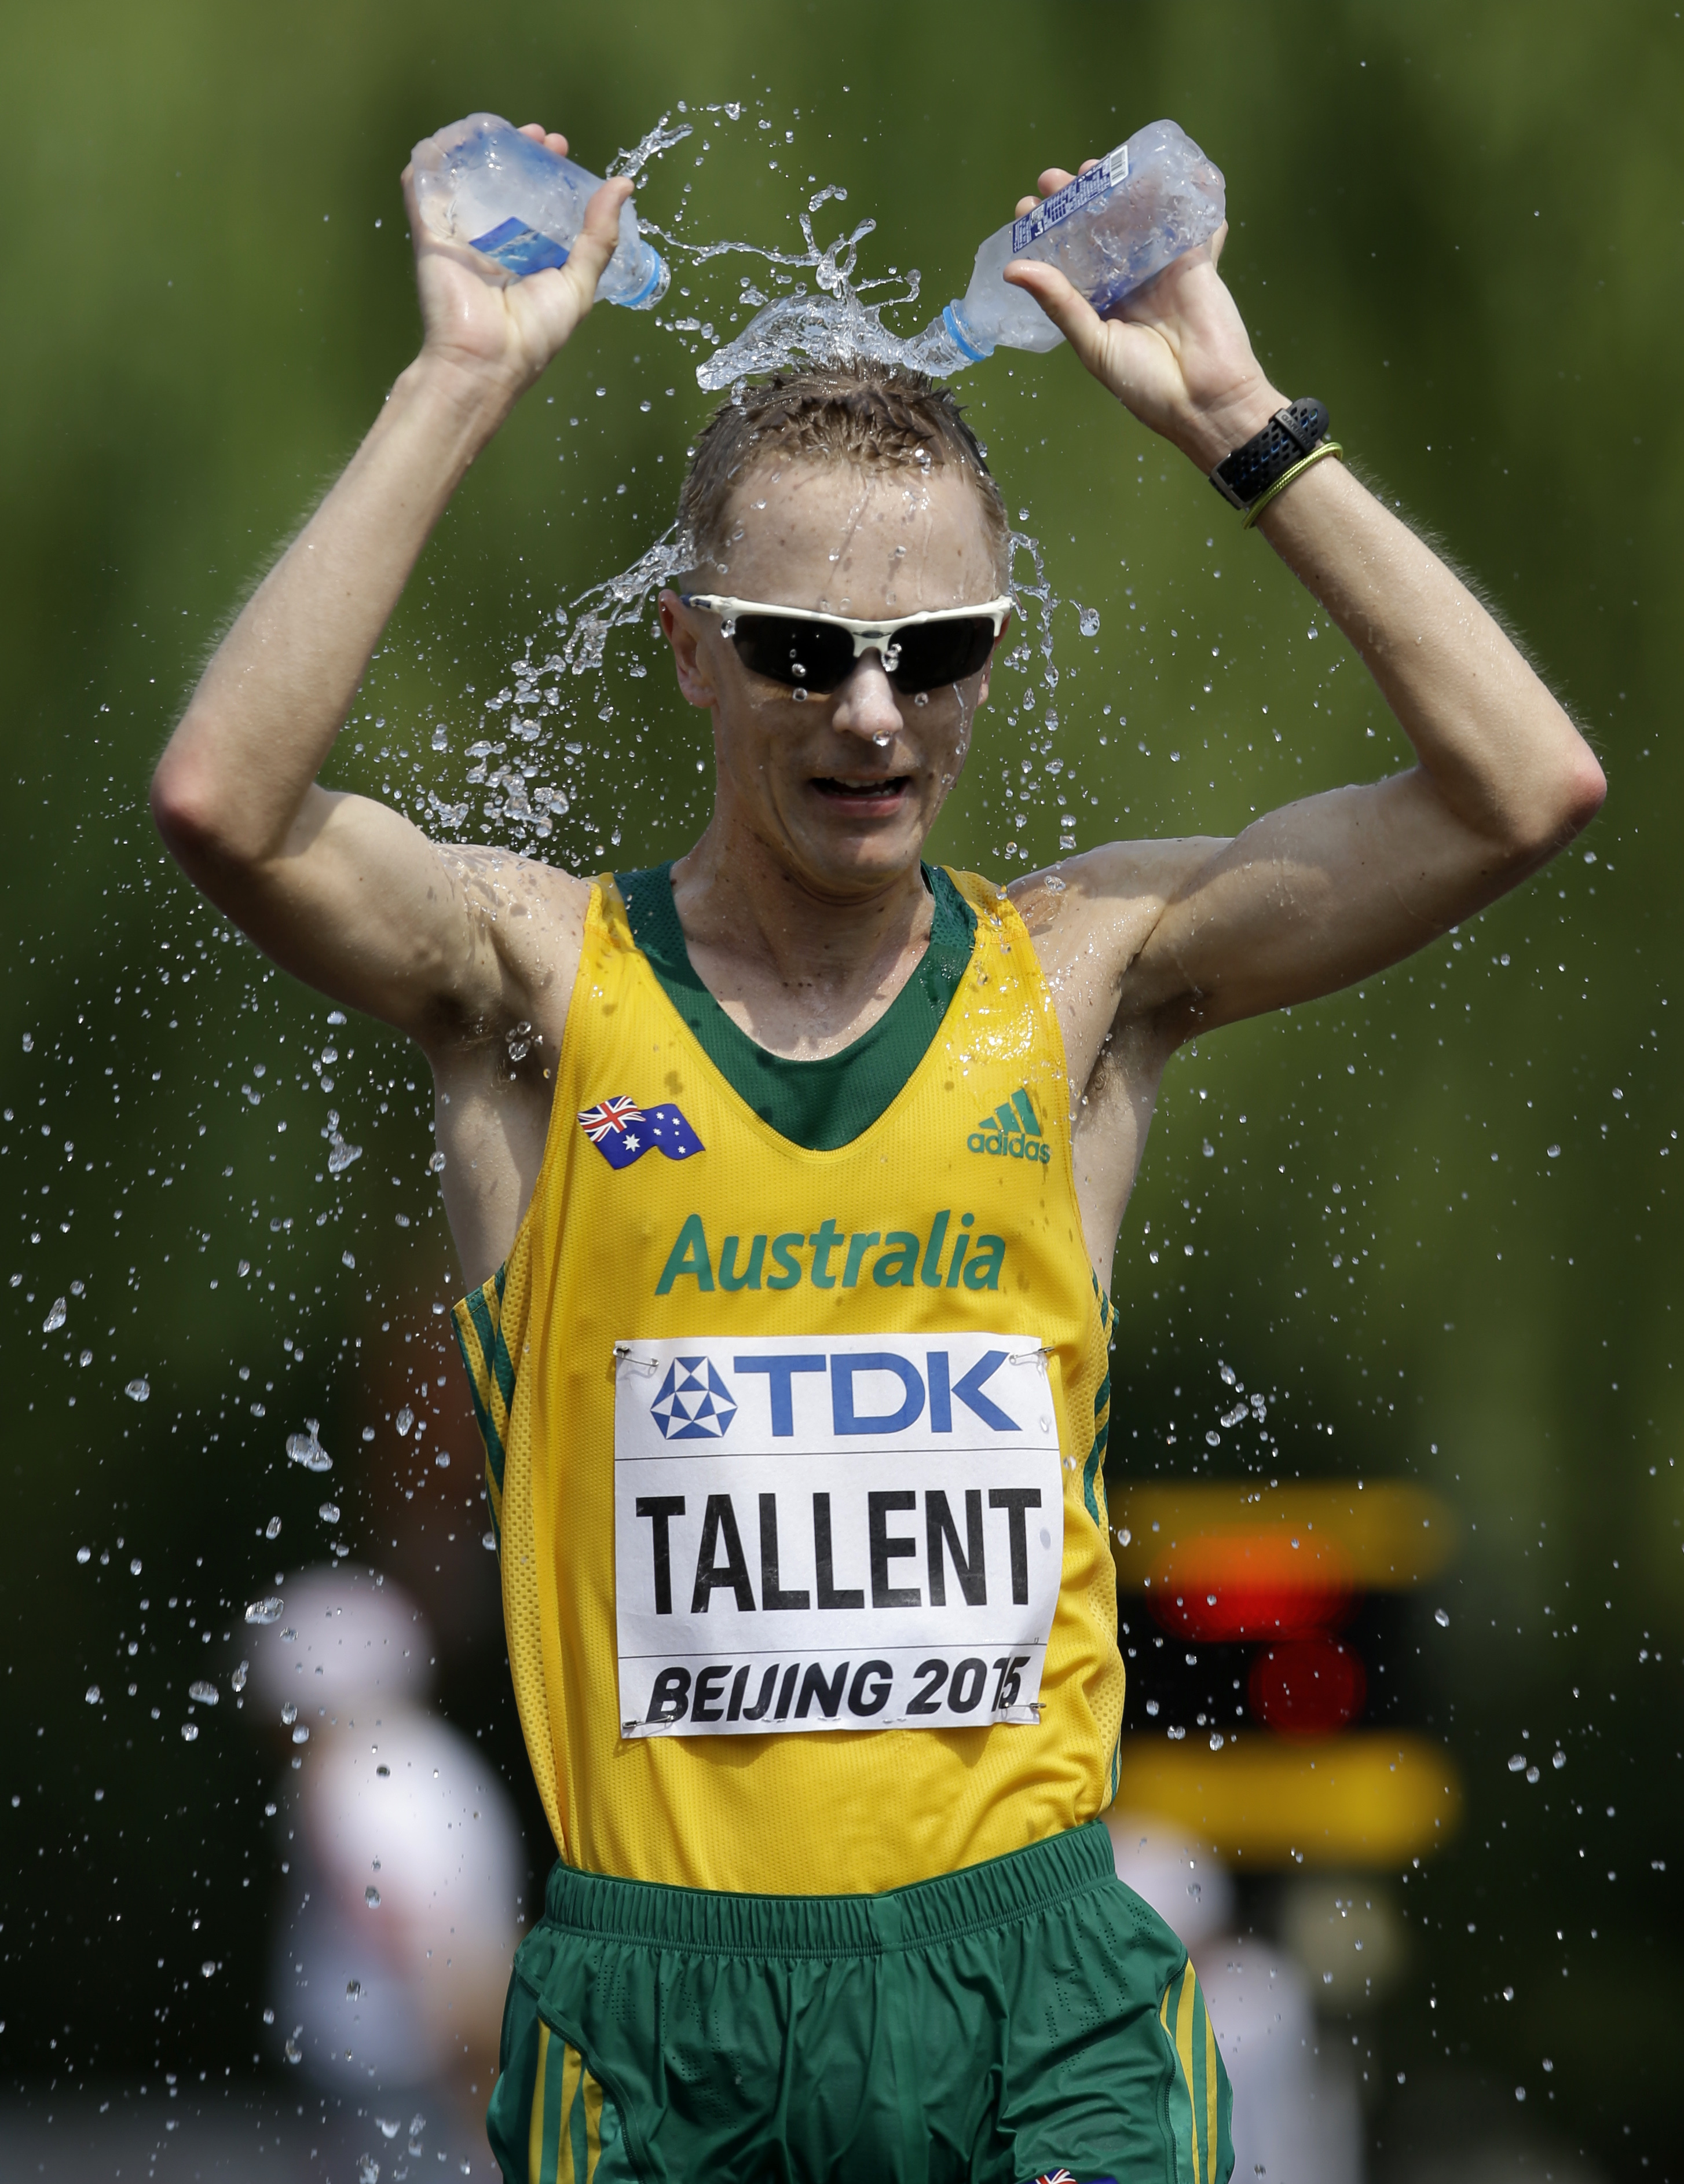 FILE - In this Aug. 29, 2015 file photo, Australia's Jared Tallent grimaces after dousing himself with water during the men's 50k race walk at the World Athletics Championships outside the Bird's Nest stadium in Beijing. Tallent says race walking is bette